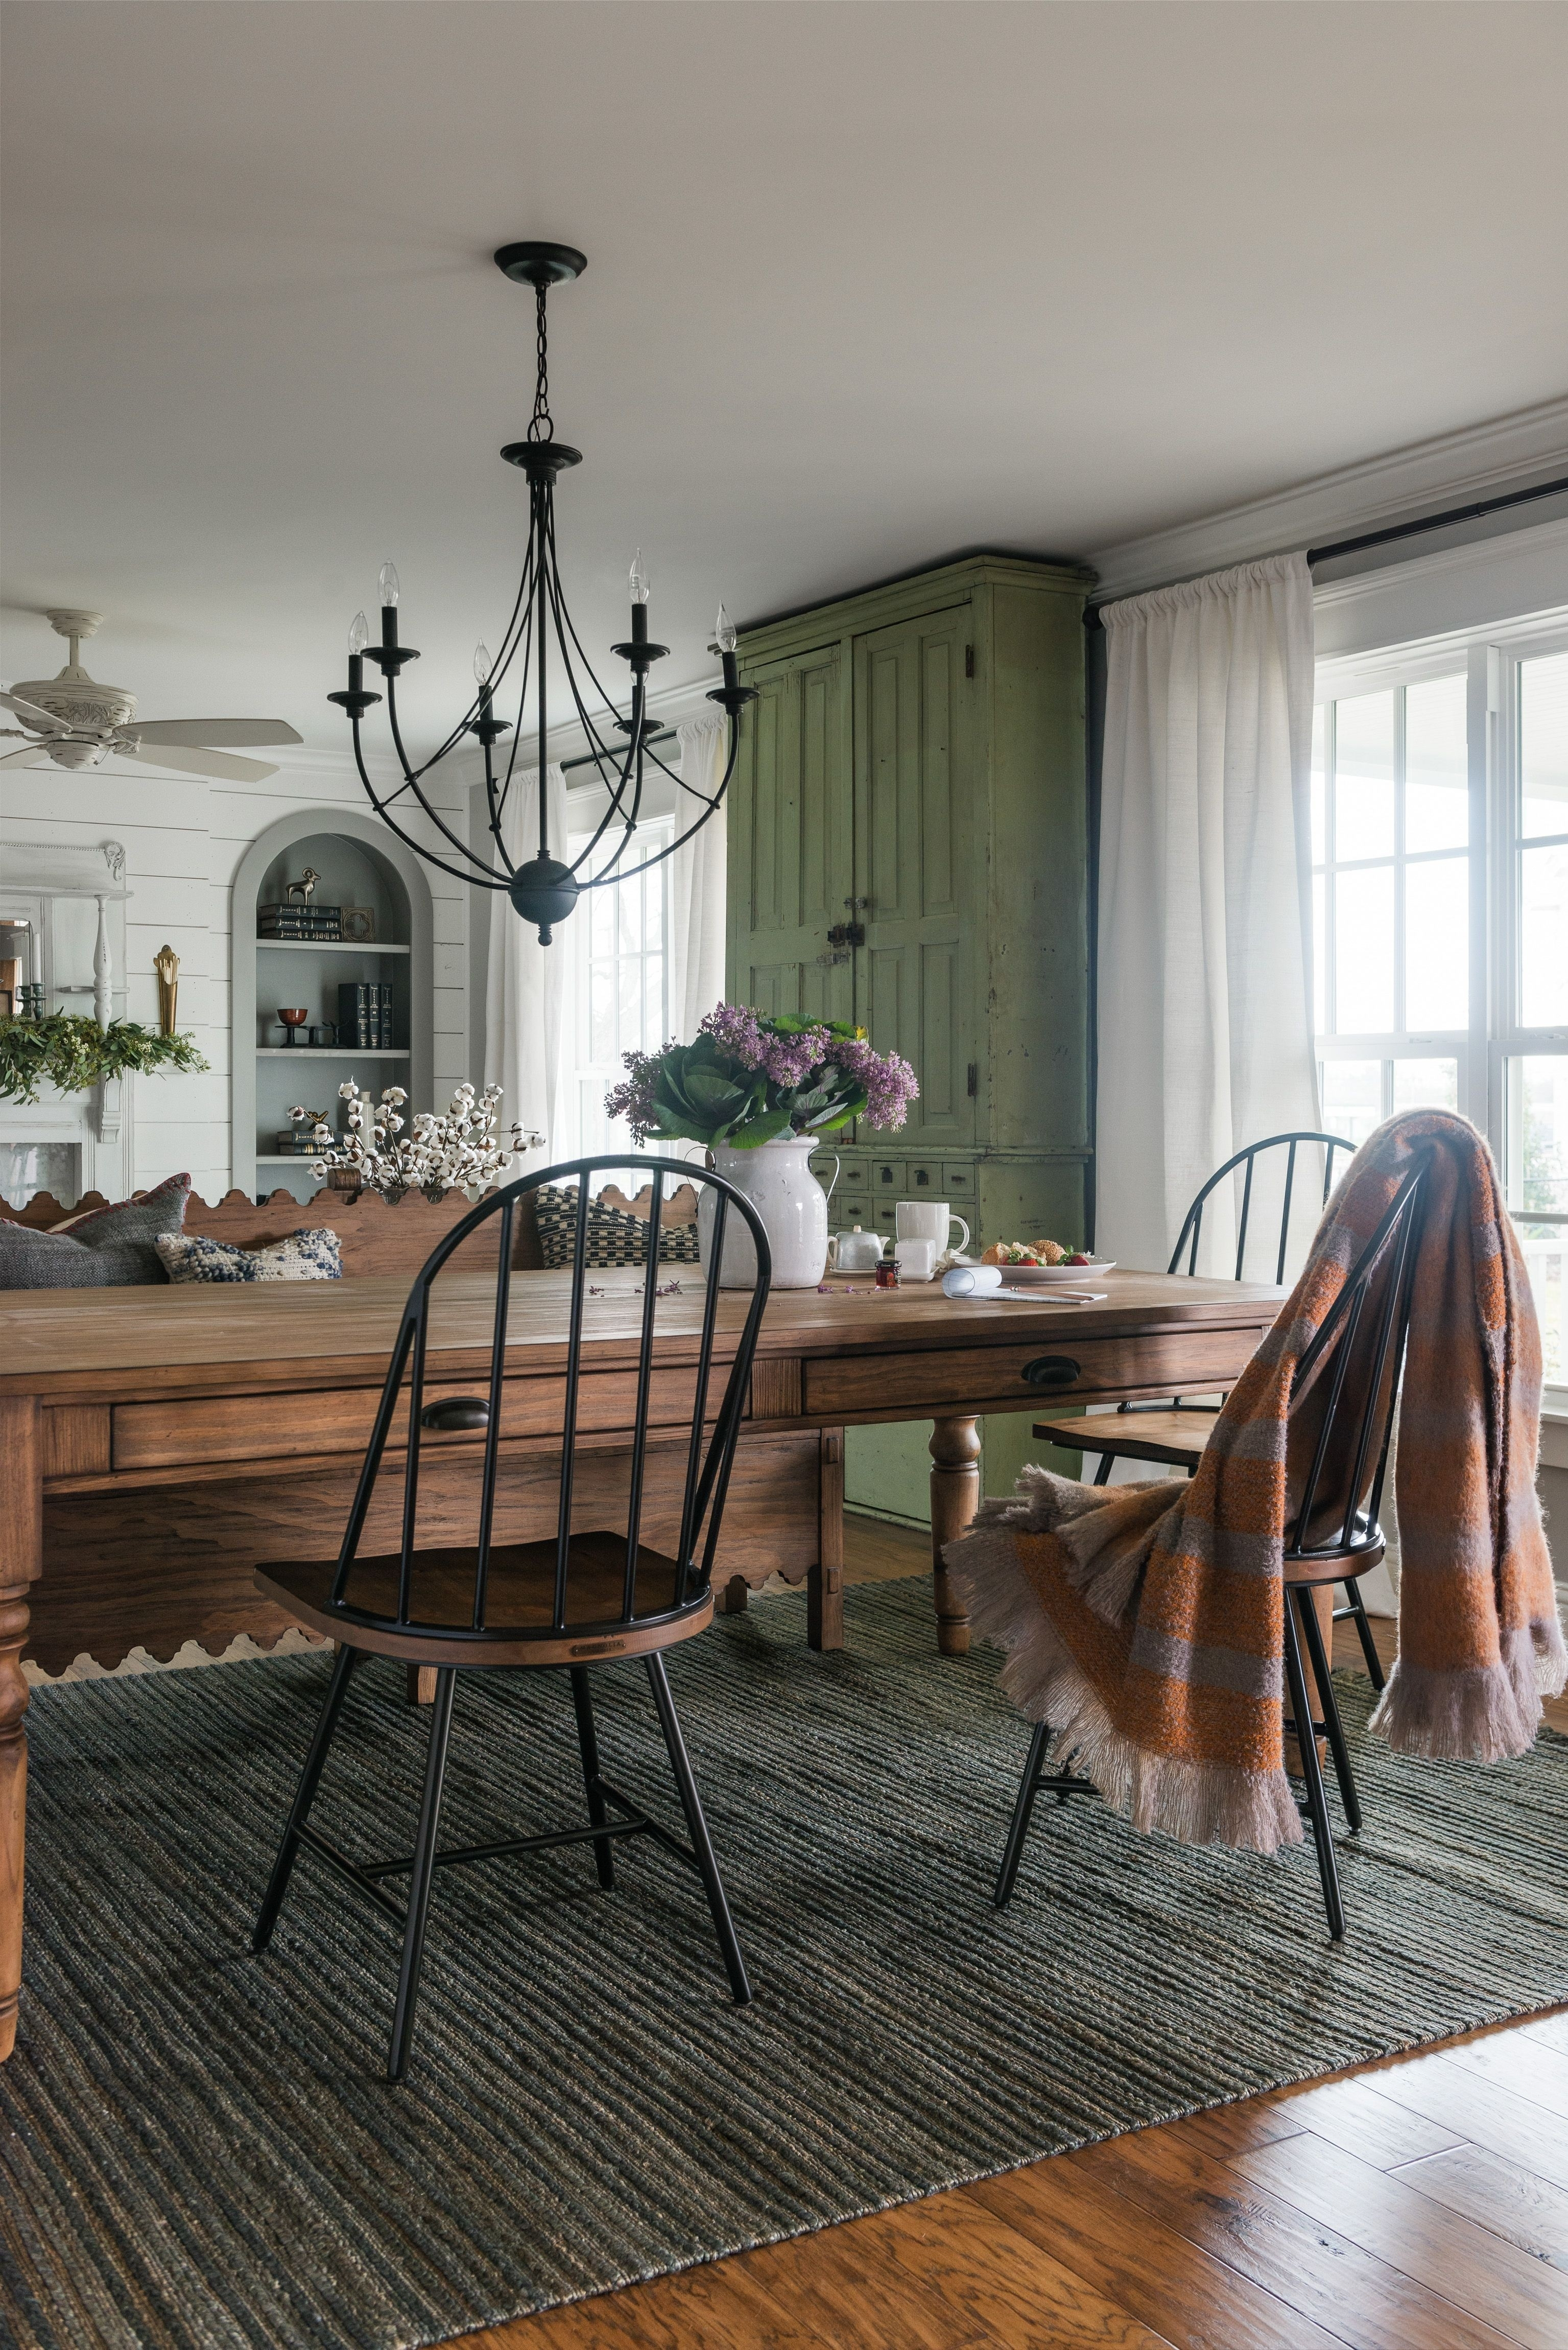 Magnolia Home Trestle Dining Table Inspirational Asheville 88 With Regard To Newest Magnolia Home Shop Floor Dining Tables With Iron Trestle (Image 19 of 20)